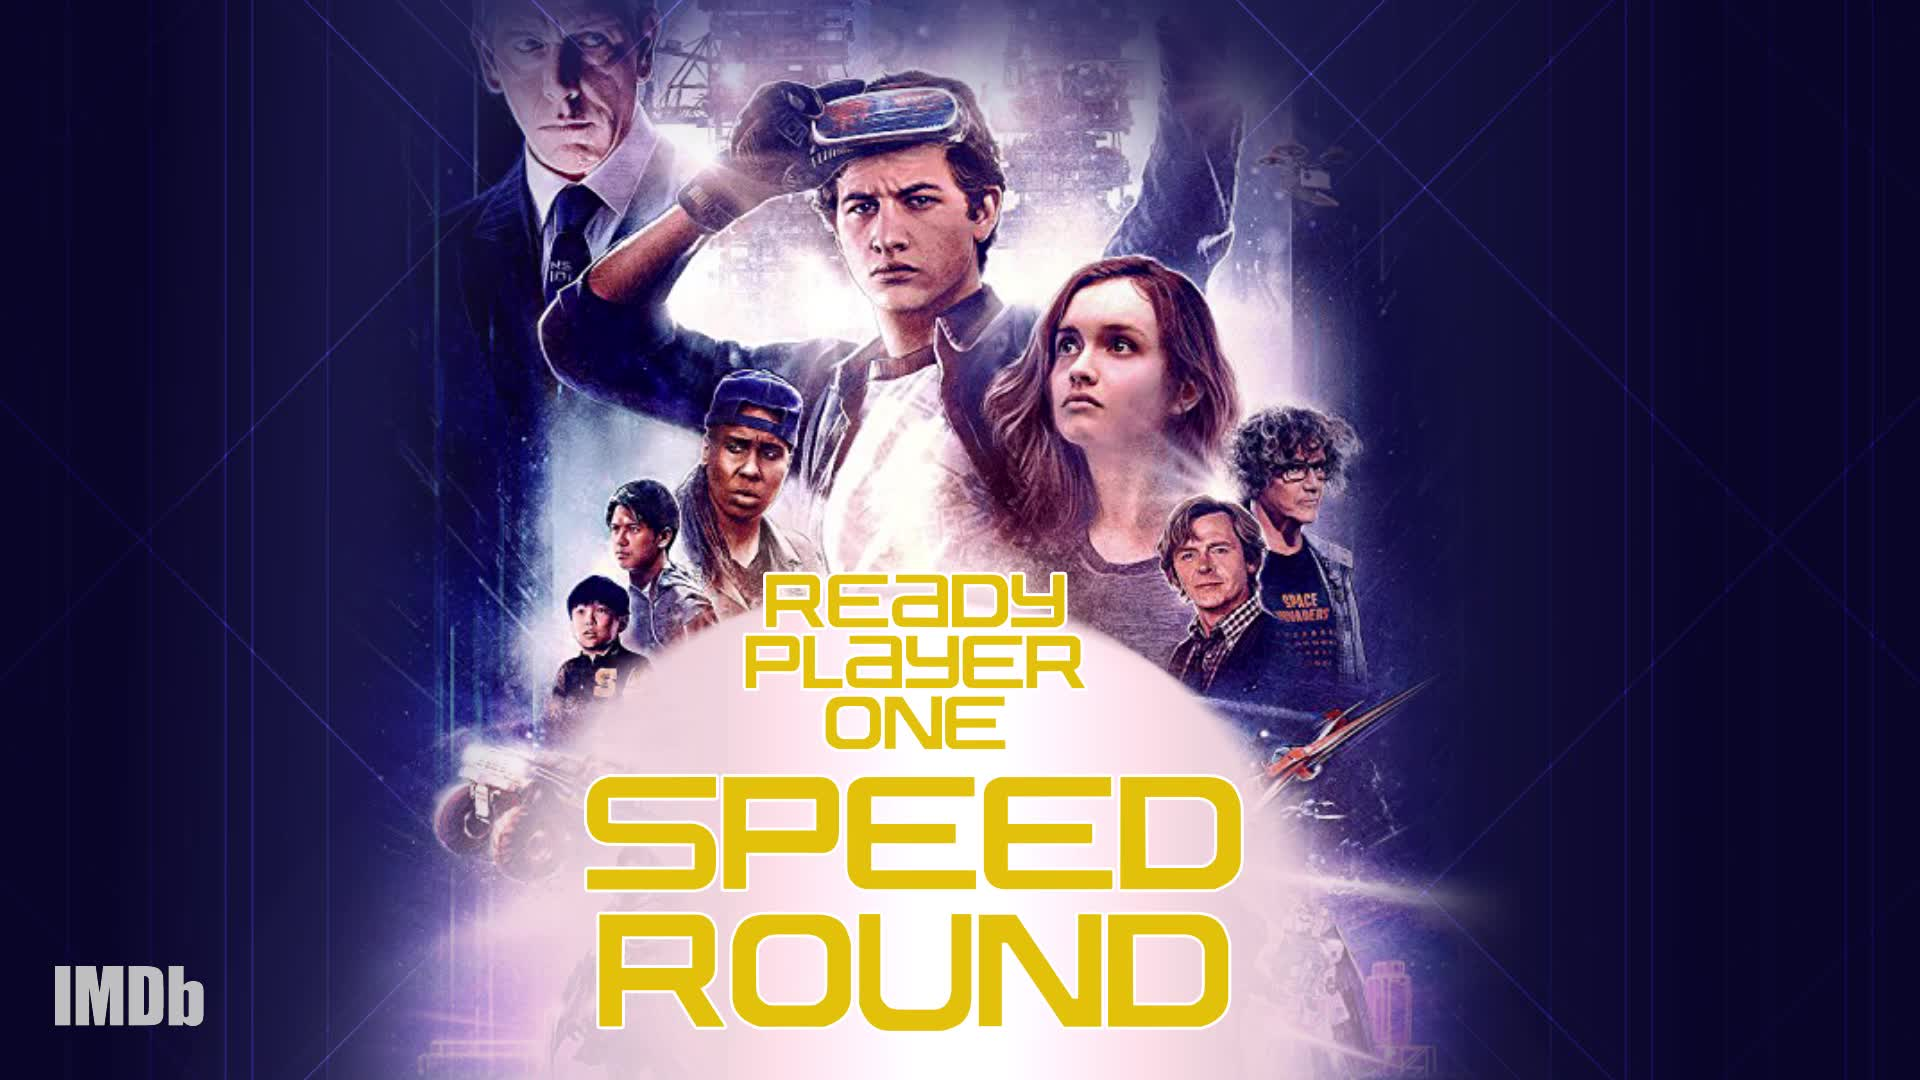 Ready Player One Speed Round From The Imdb Show